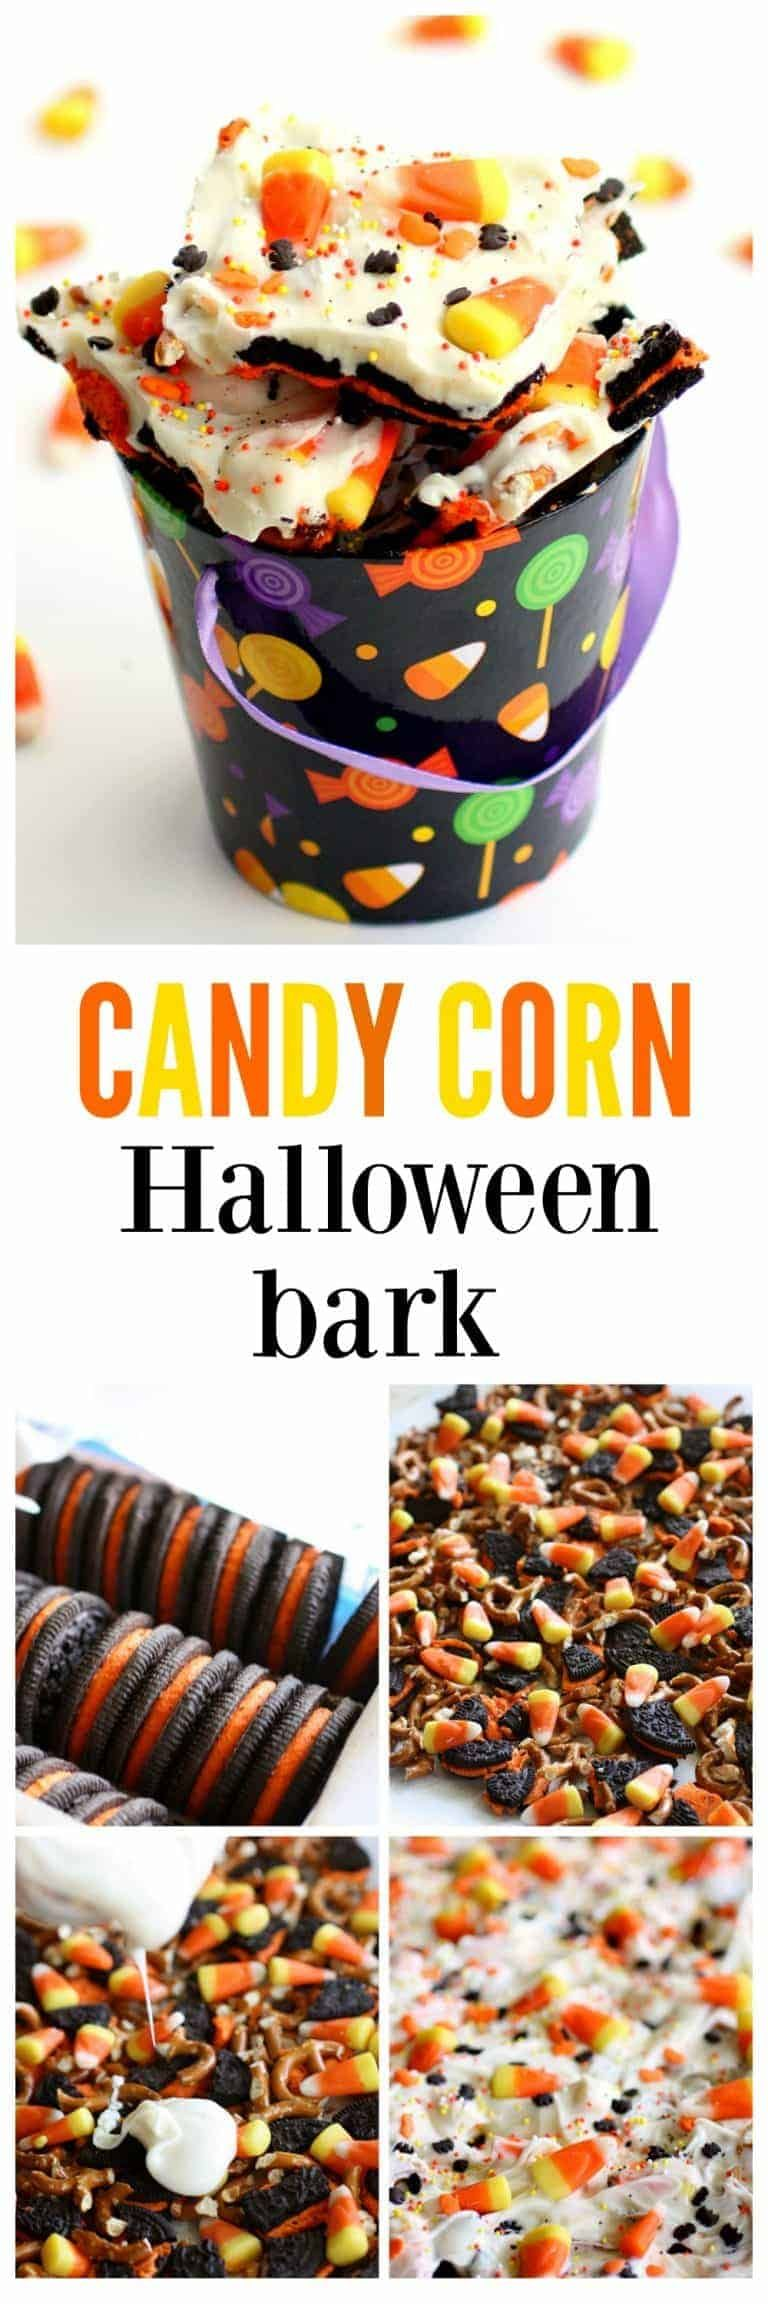 Halloween Candy Corn Cookie Bark - The Girl Who Ate Everything